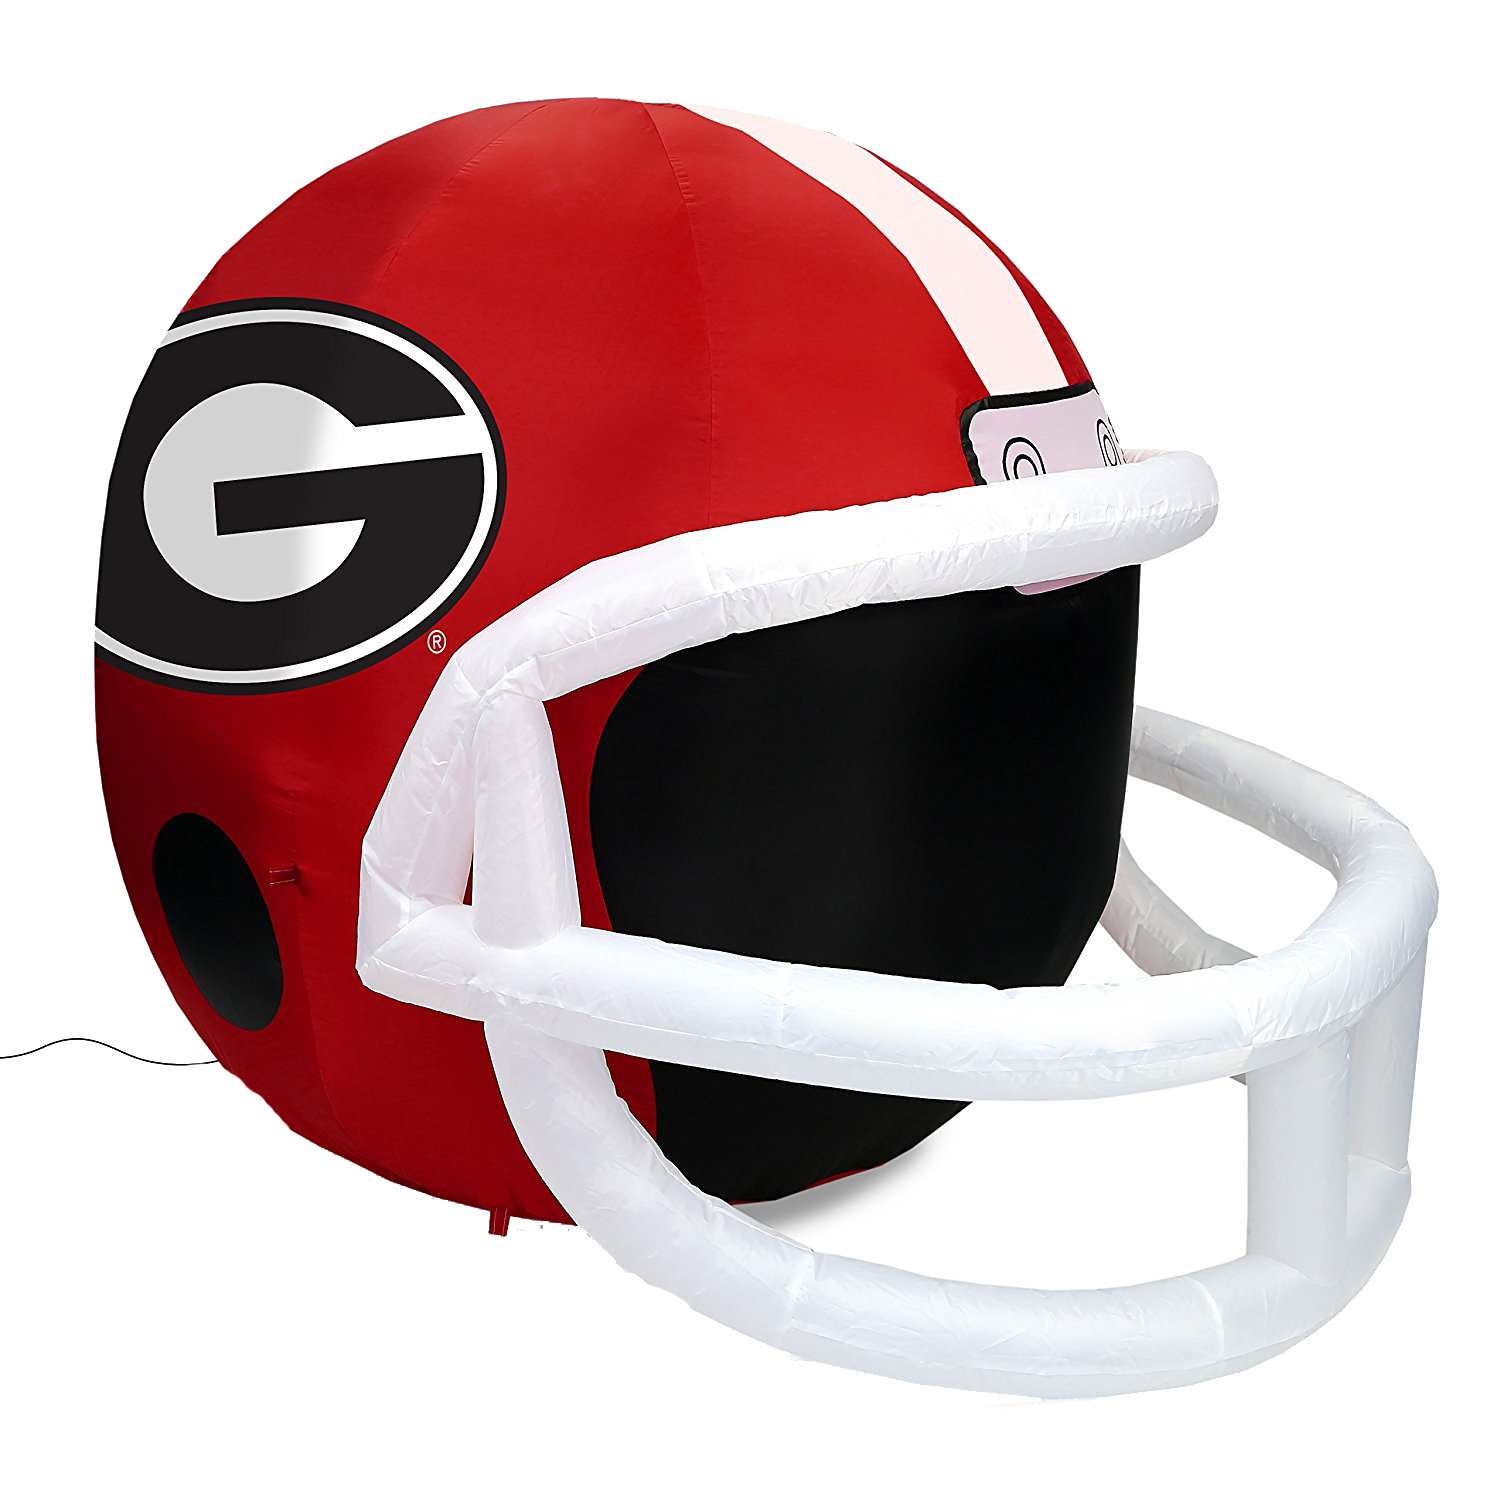 NCAA Georgia Bulldogs Team Inflatable Lawn Helmet, Red, One Size